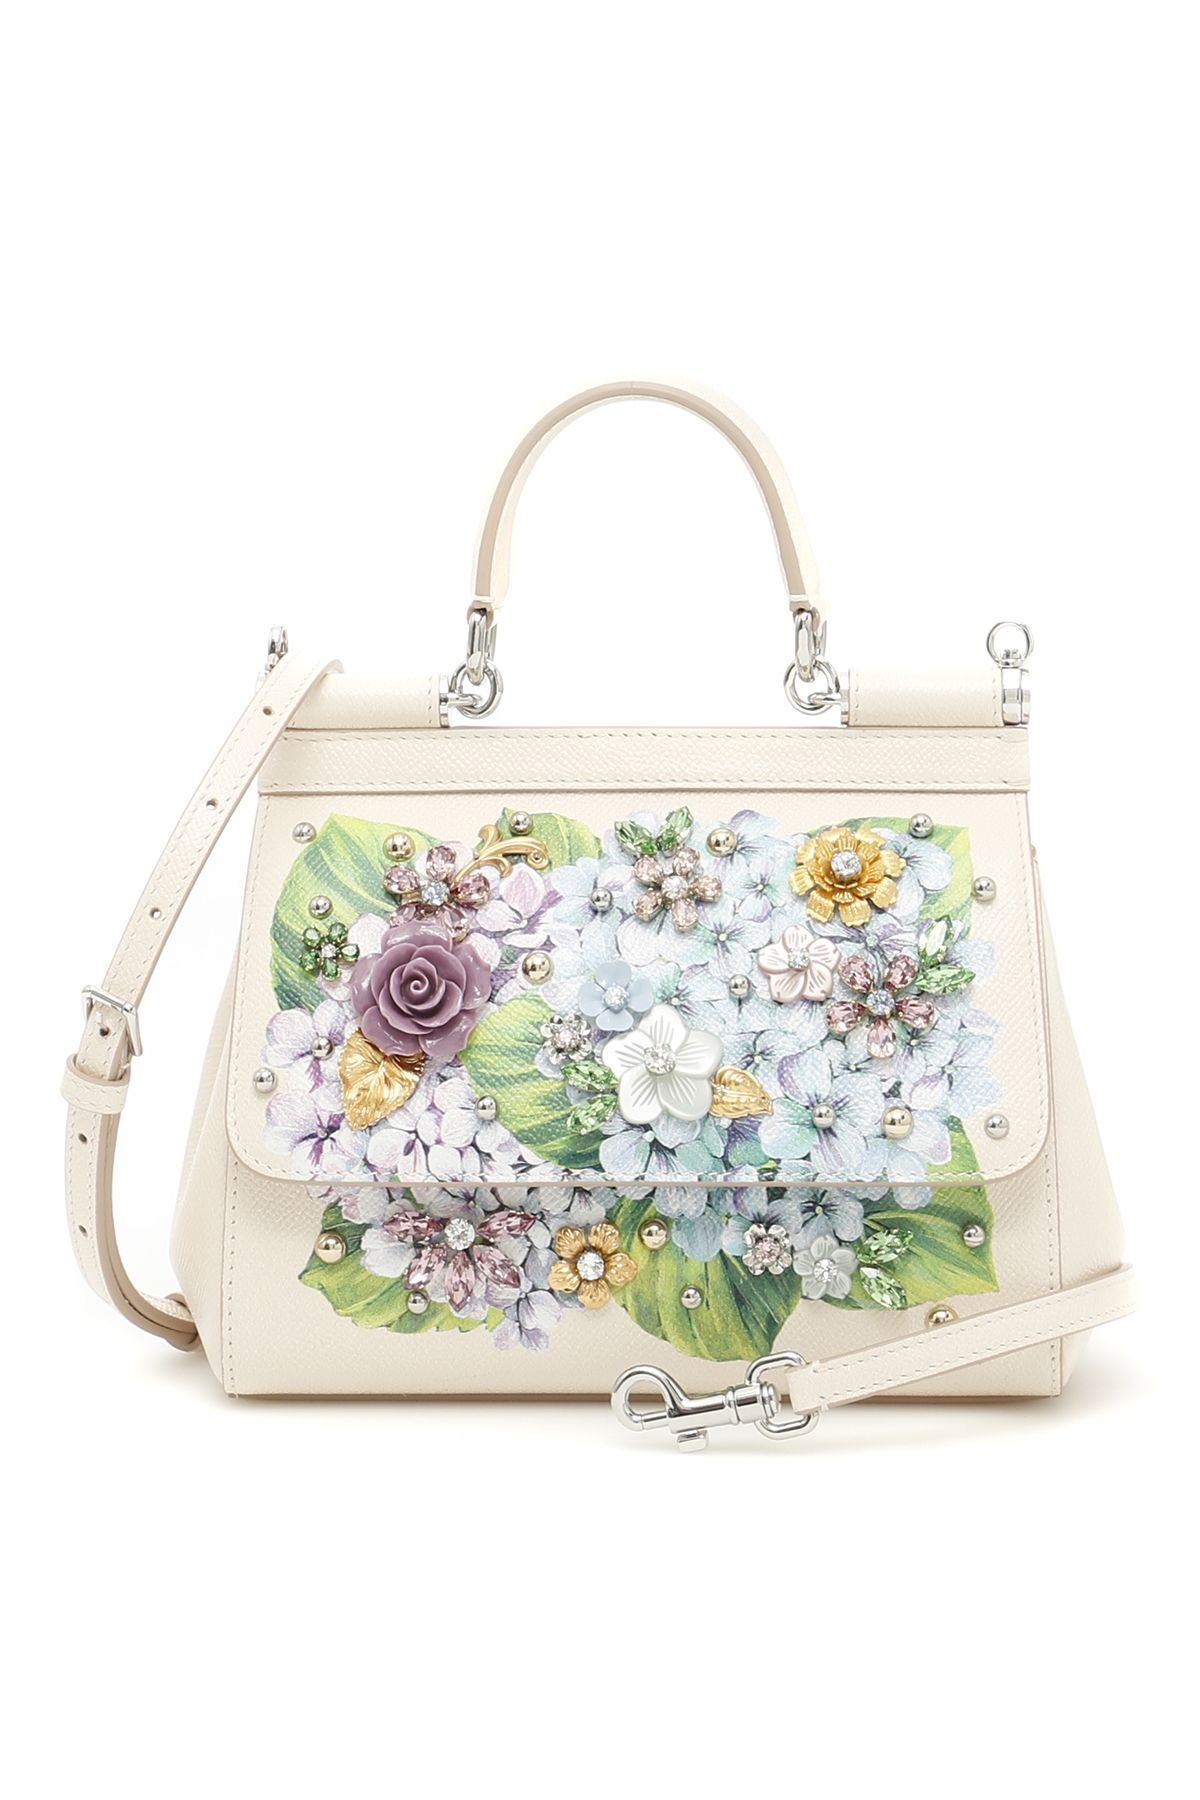 Dolce   Gabbana dauphine calfskin Small Sicily bag with Hydrangea print,  metal studs and flowers made of resin and crystals. Removable and  adjustable strap, ... cc73572996